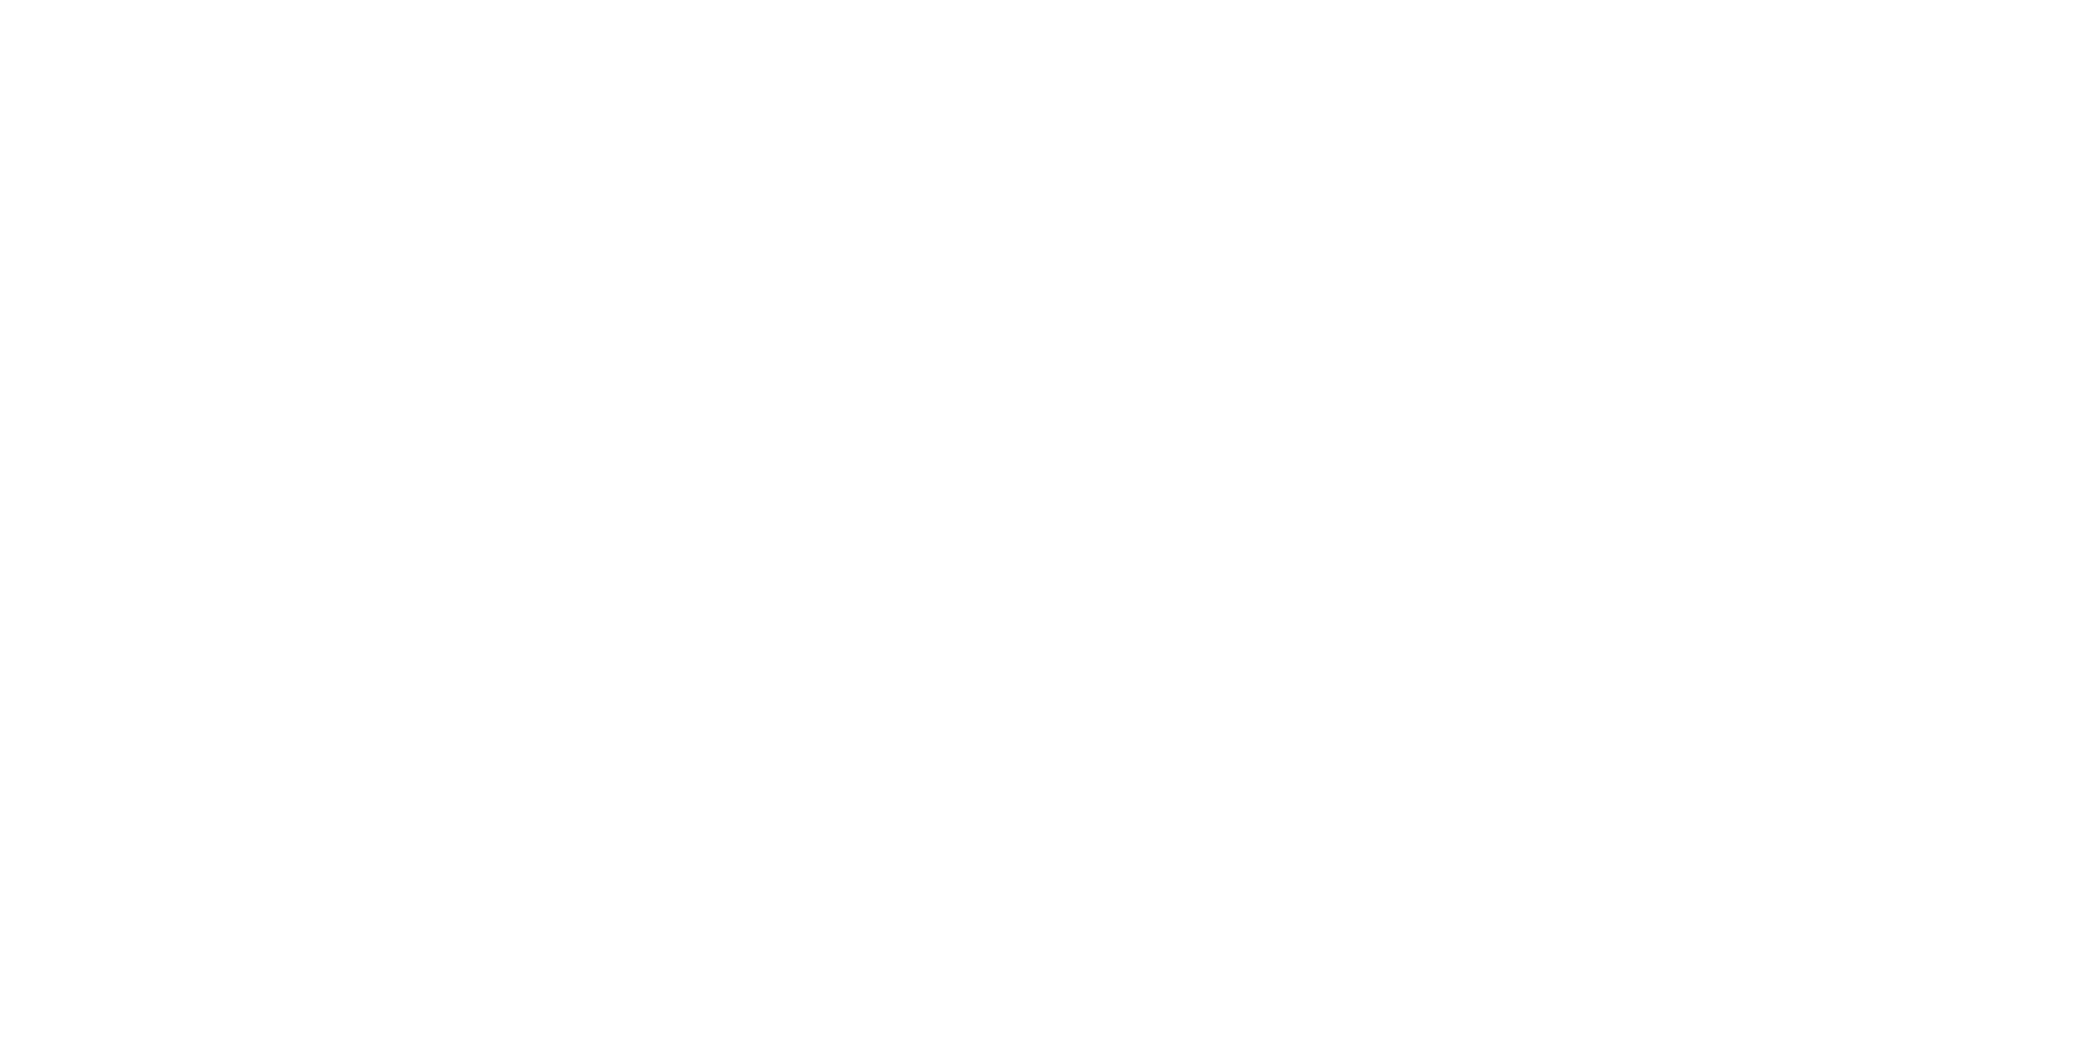 Legend Preferred Hotels & Resorts